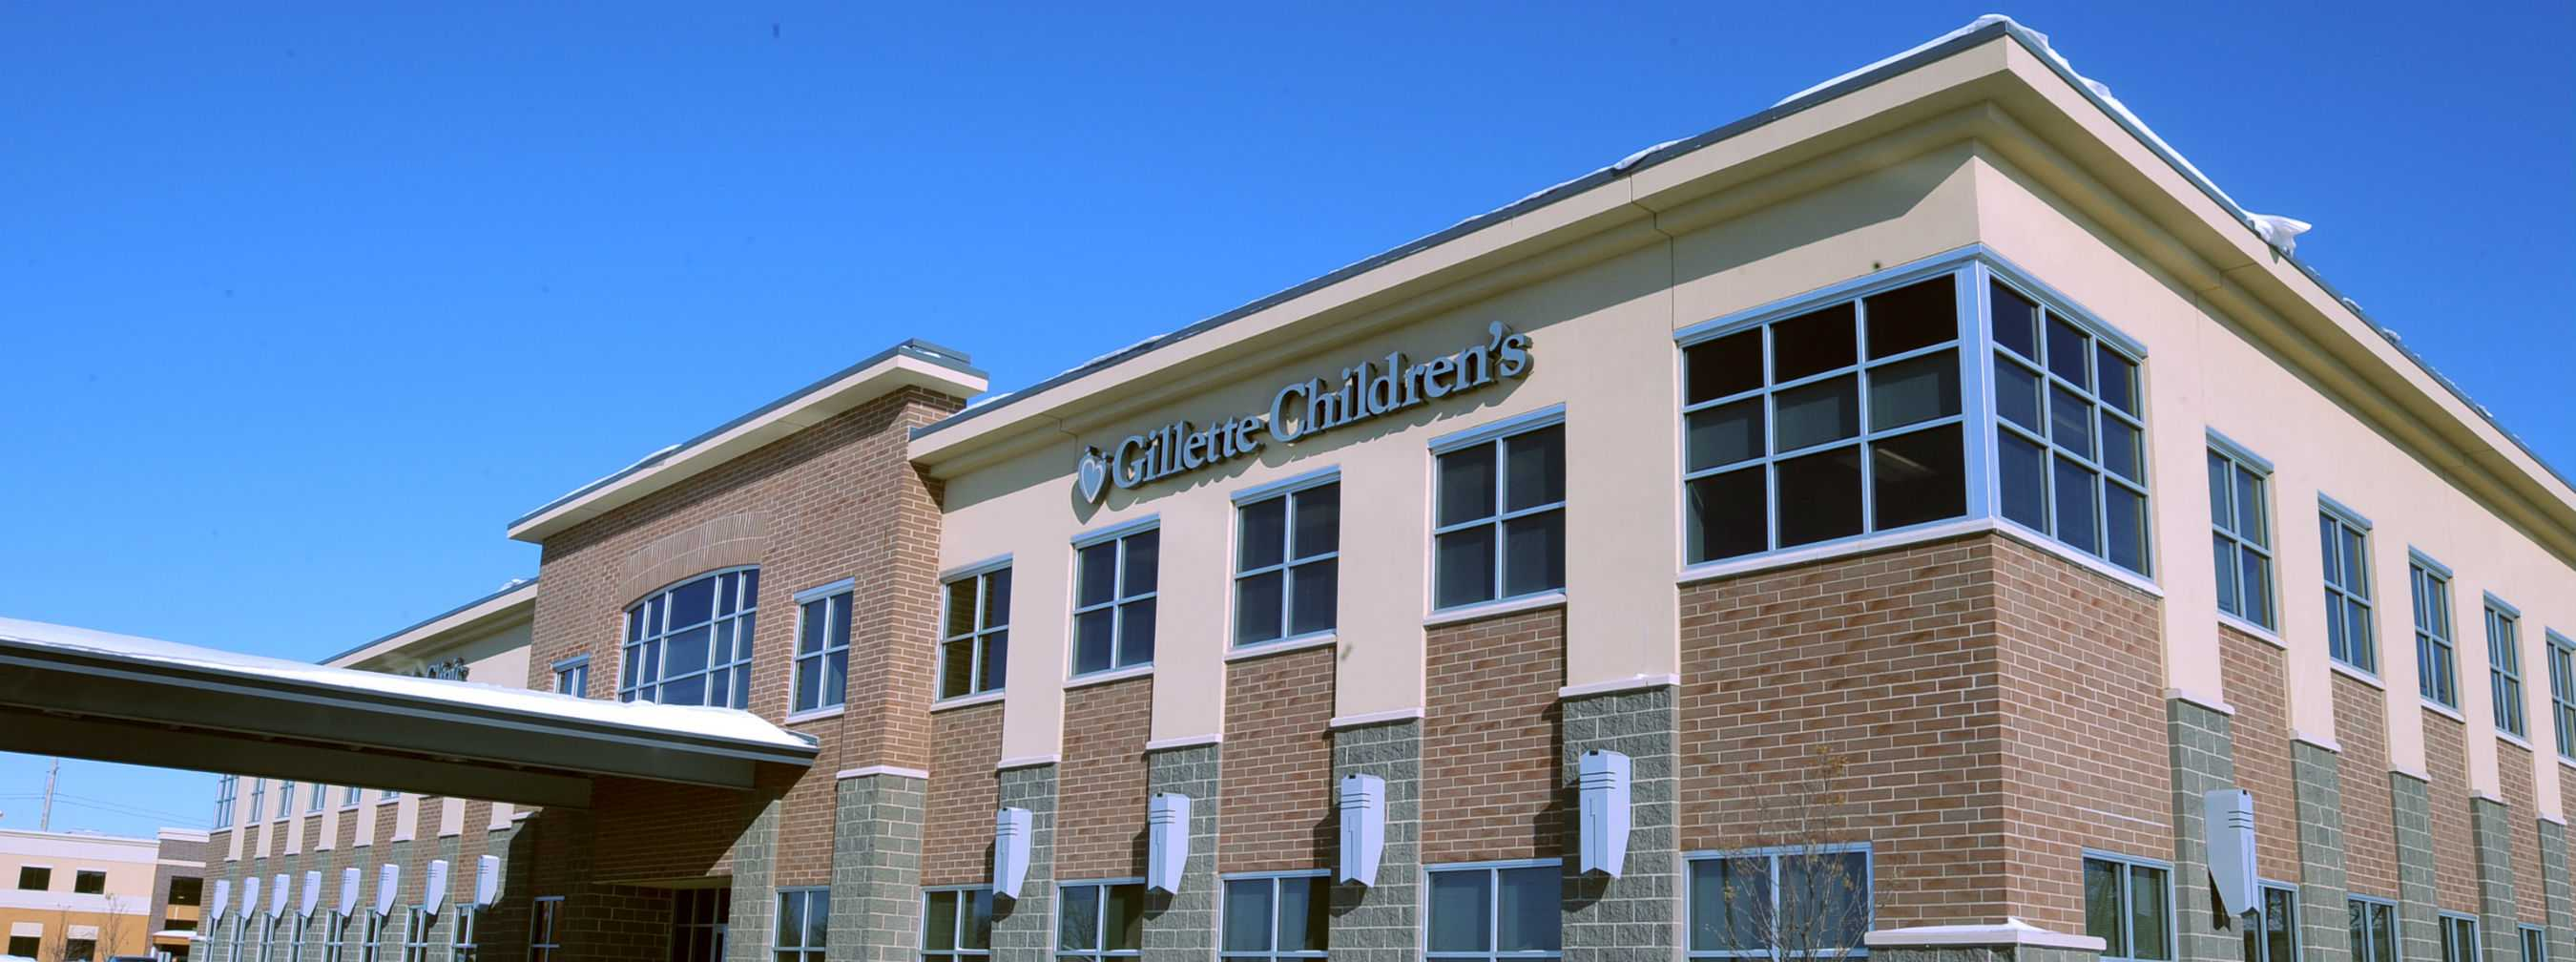 Exterior of Gillette children's Maple Grove clinic, MN